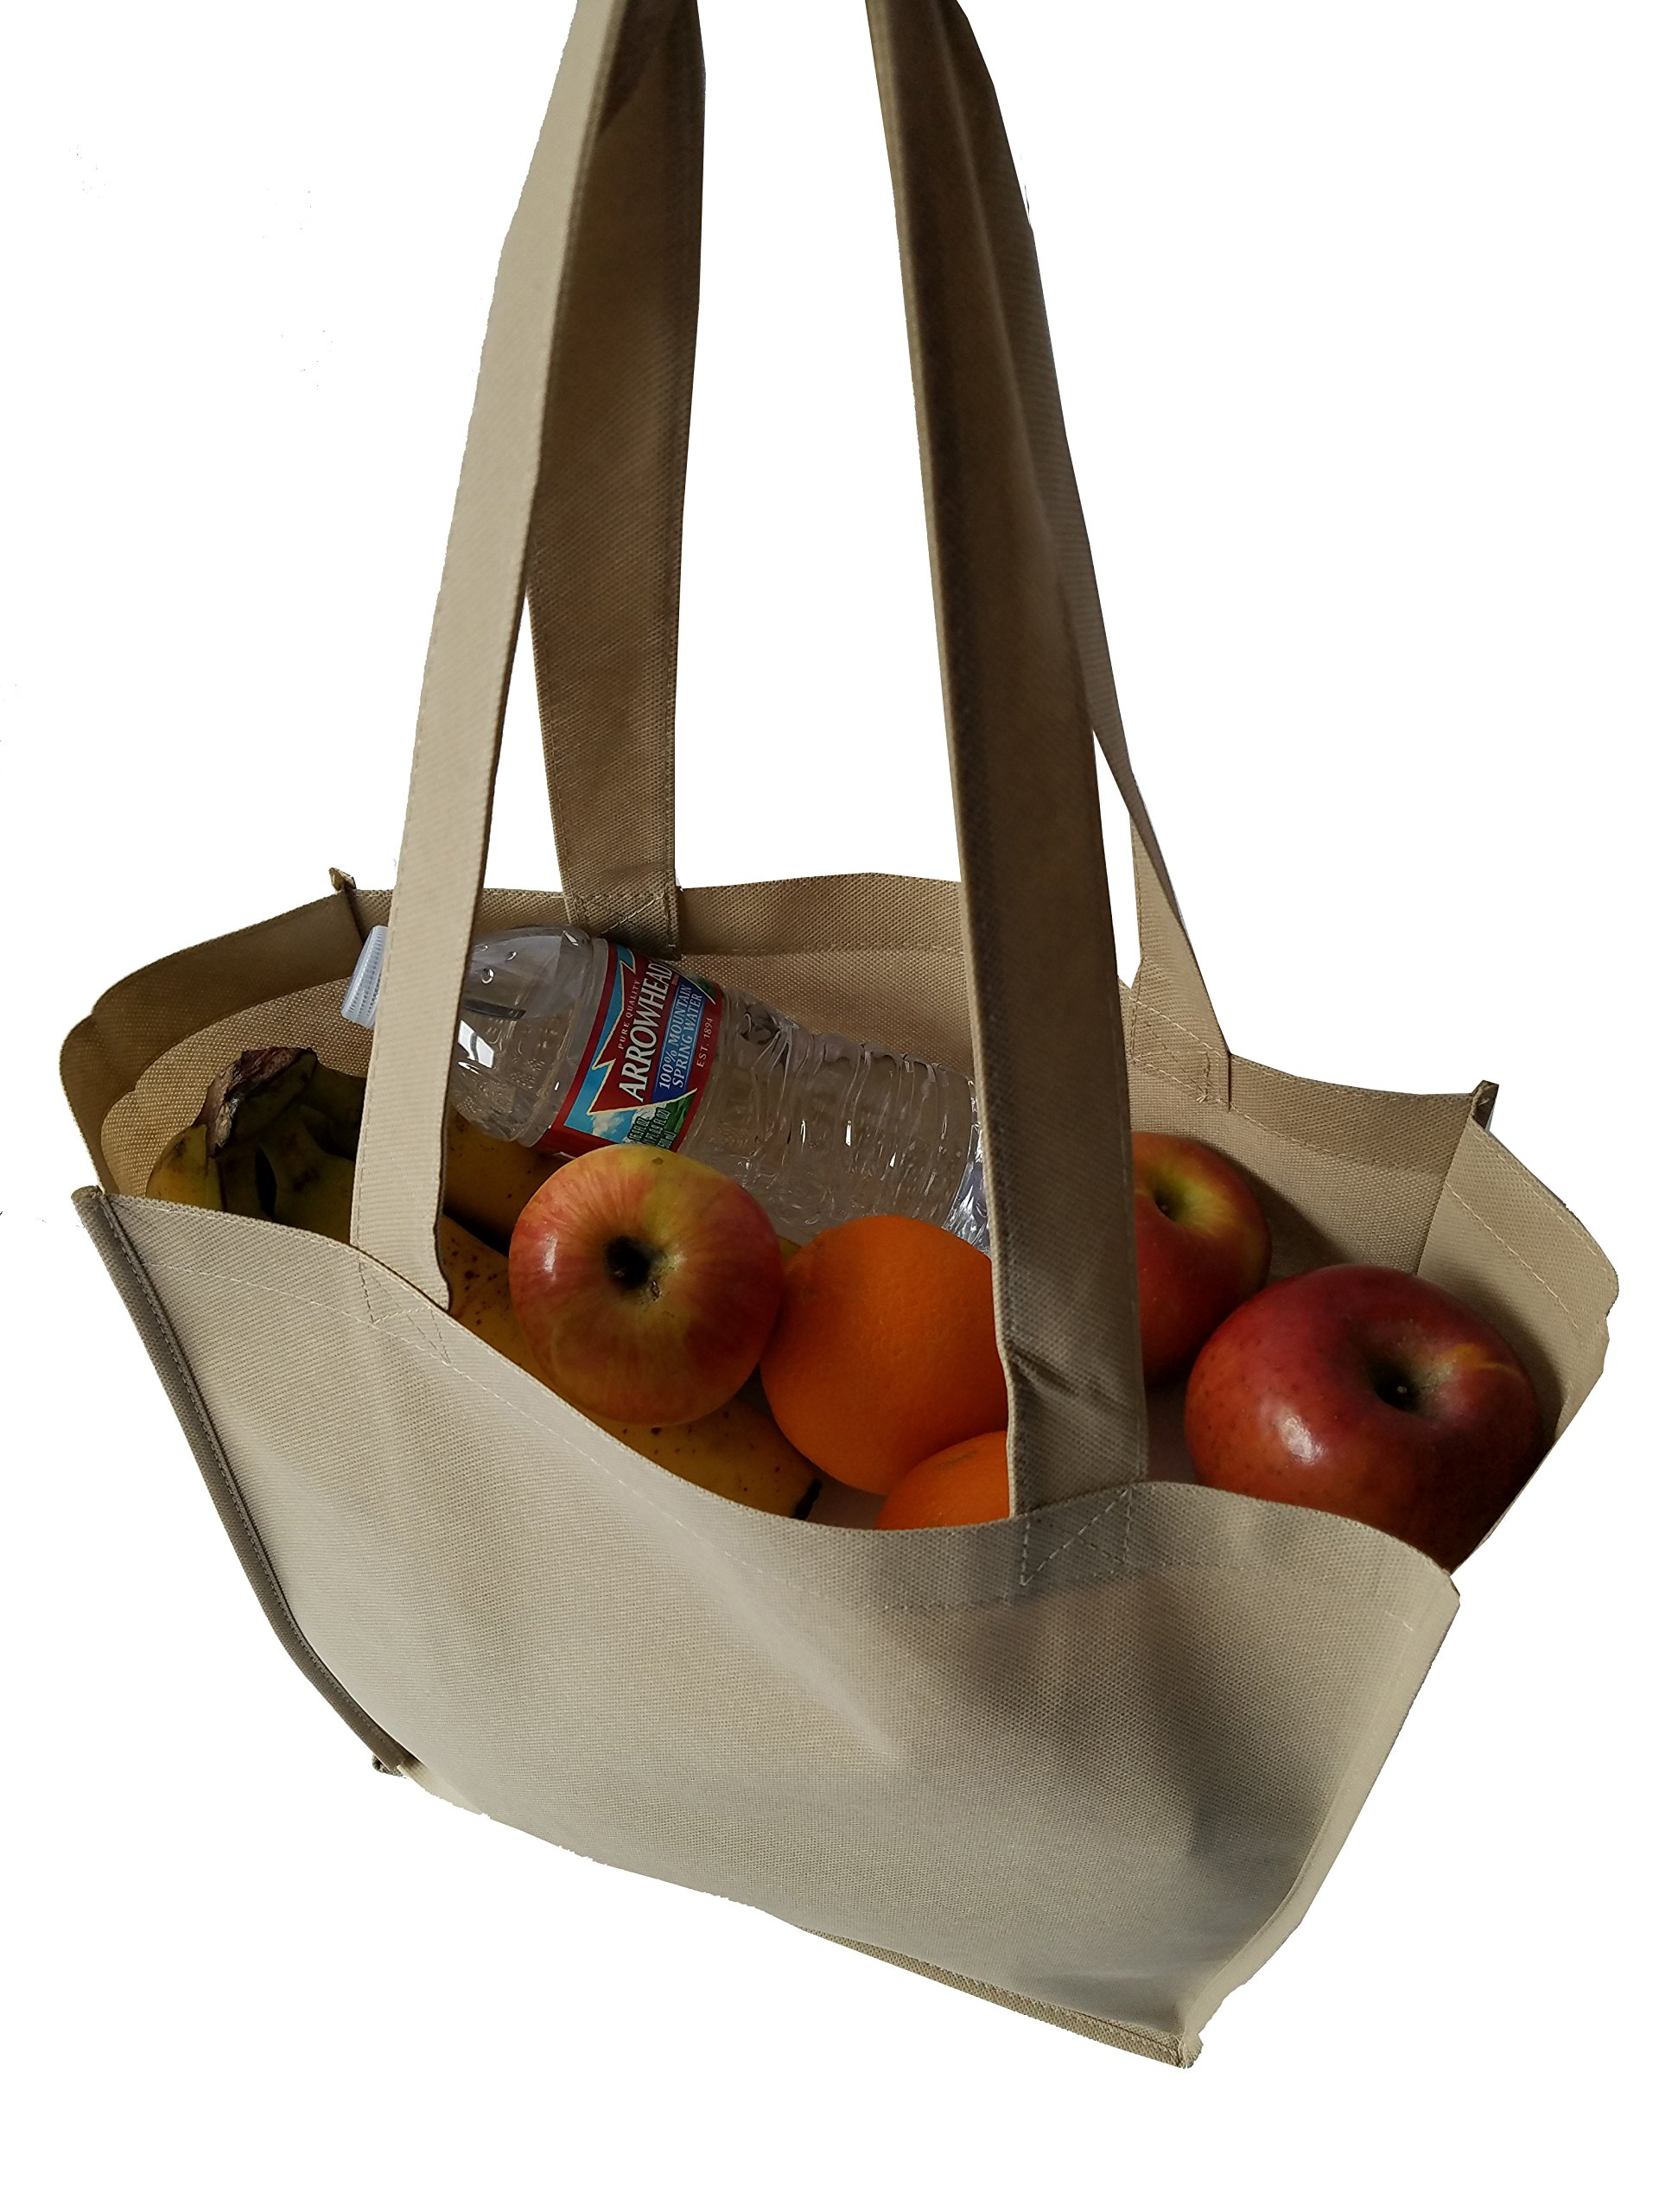 ImpecGear 15'' Tote W/ 6 Gusset Grocery Bag Recycled Reusable Shopping Tote Shoulder Bag Luggage (3, Natural) by ImpecGear (Image #4)